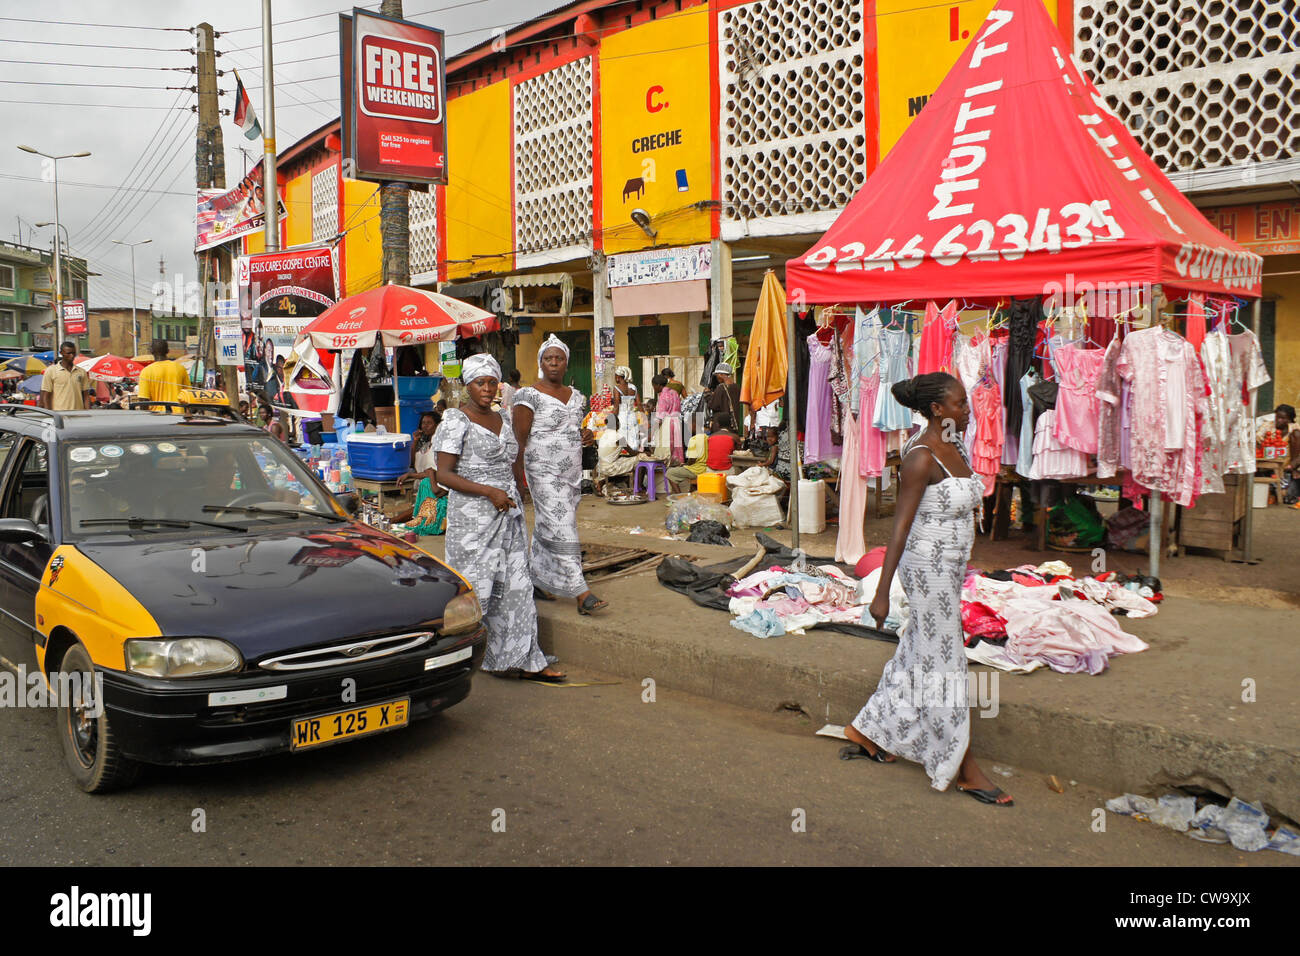 Ghana Taxi Stock Photos & Ghana Taxi Stock Images - Alamy